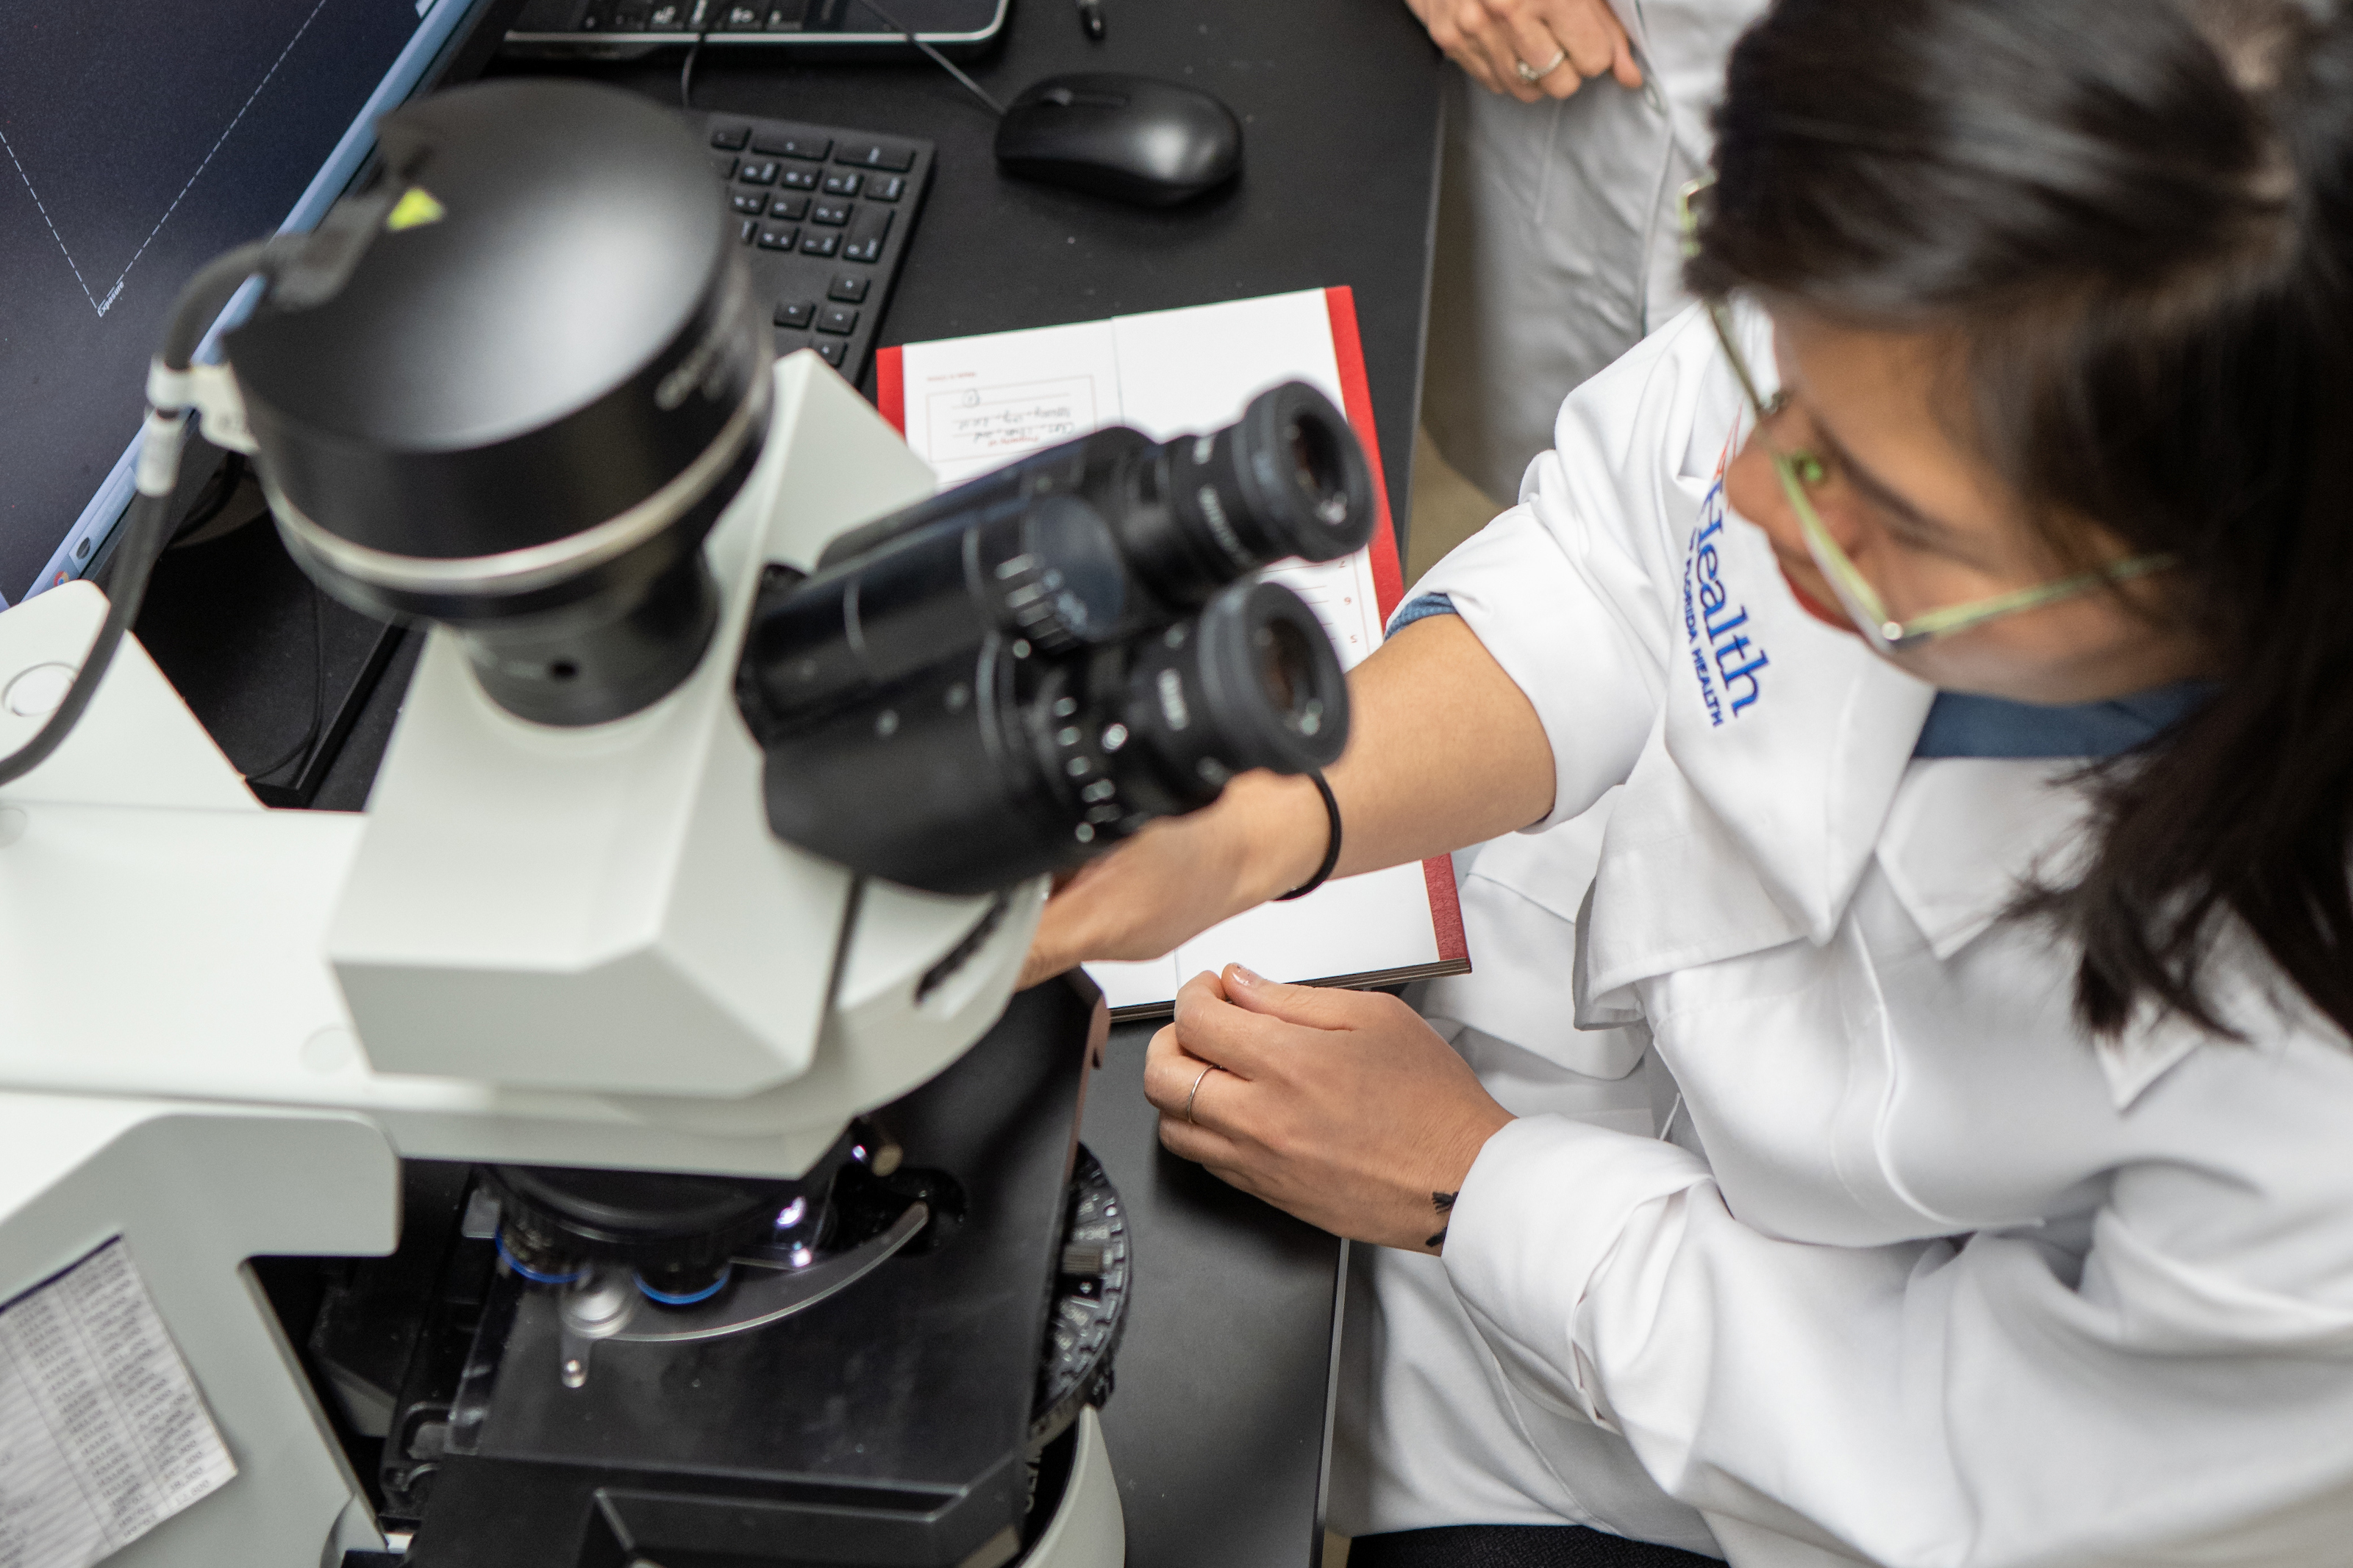 Researcher in lab at microscope